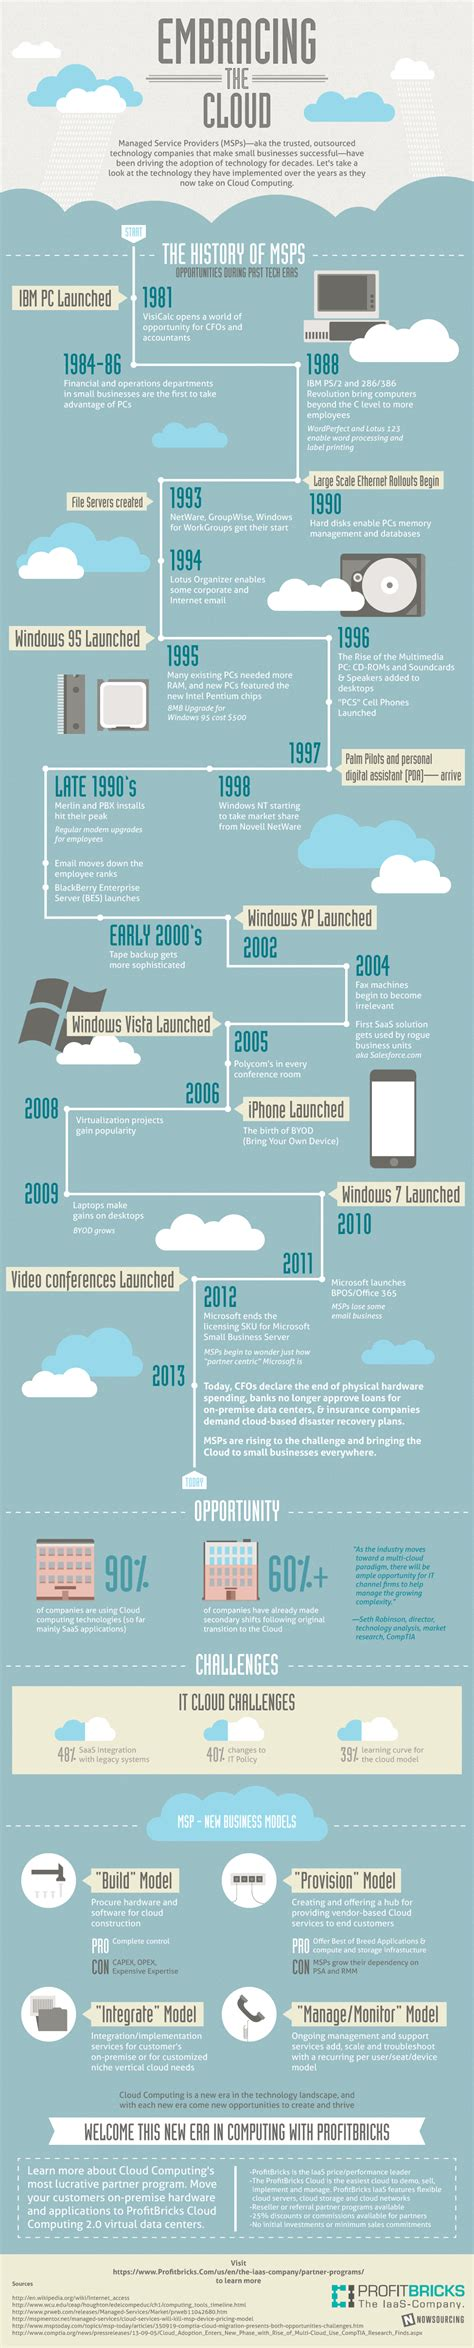 cloud computing infographic embracing the cloud infographic